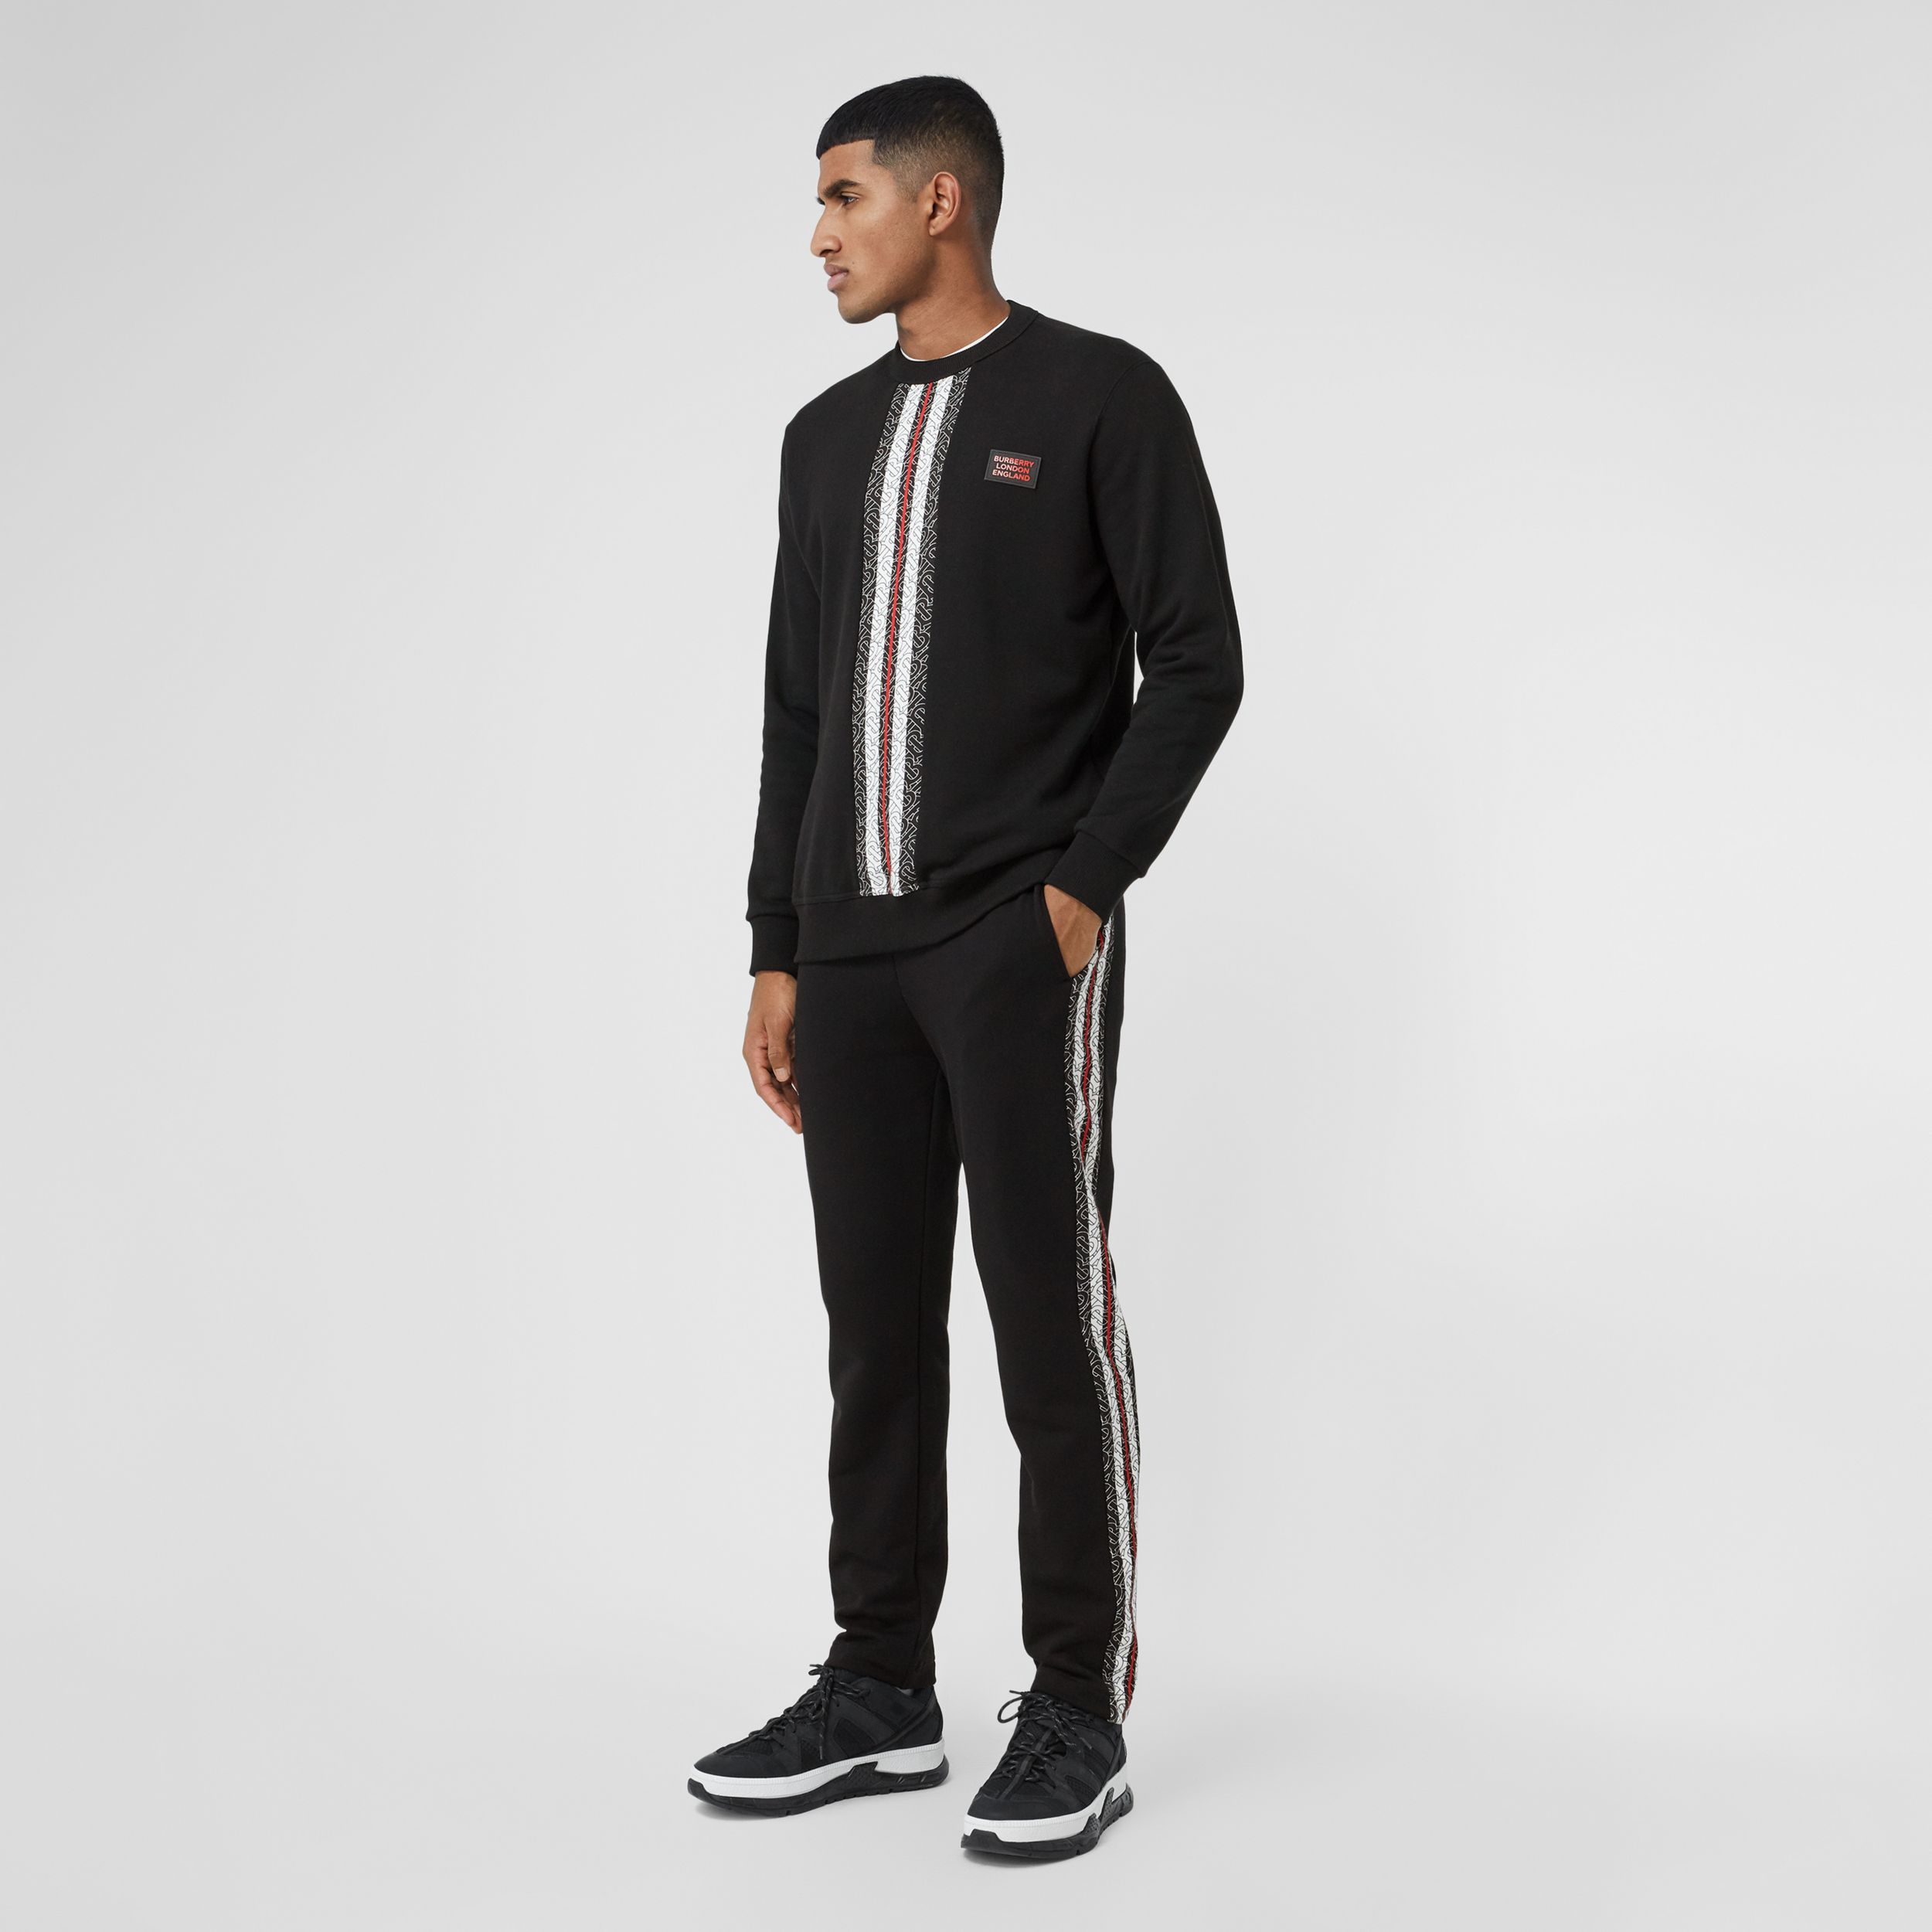 Monogram Stripe Panel Cotton Jogging Pants in Black - Men | Burberry Hong Kong S.A.R. - 1